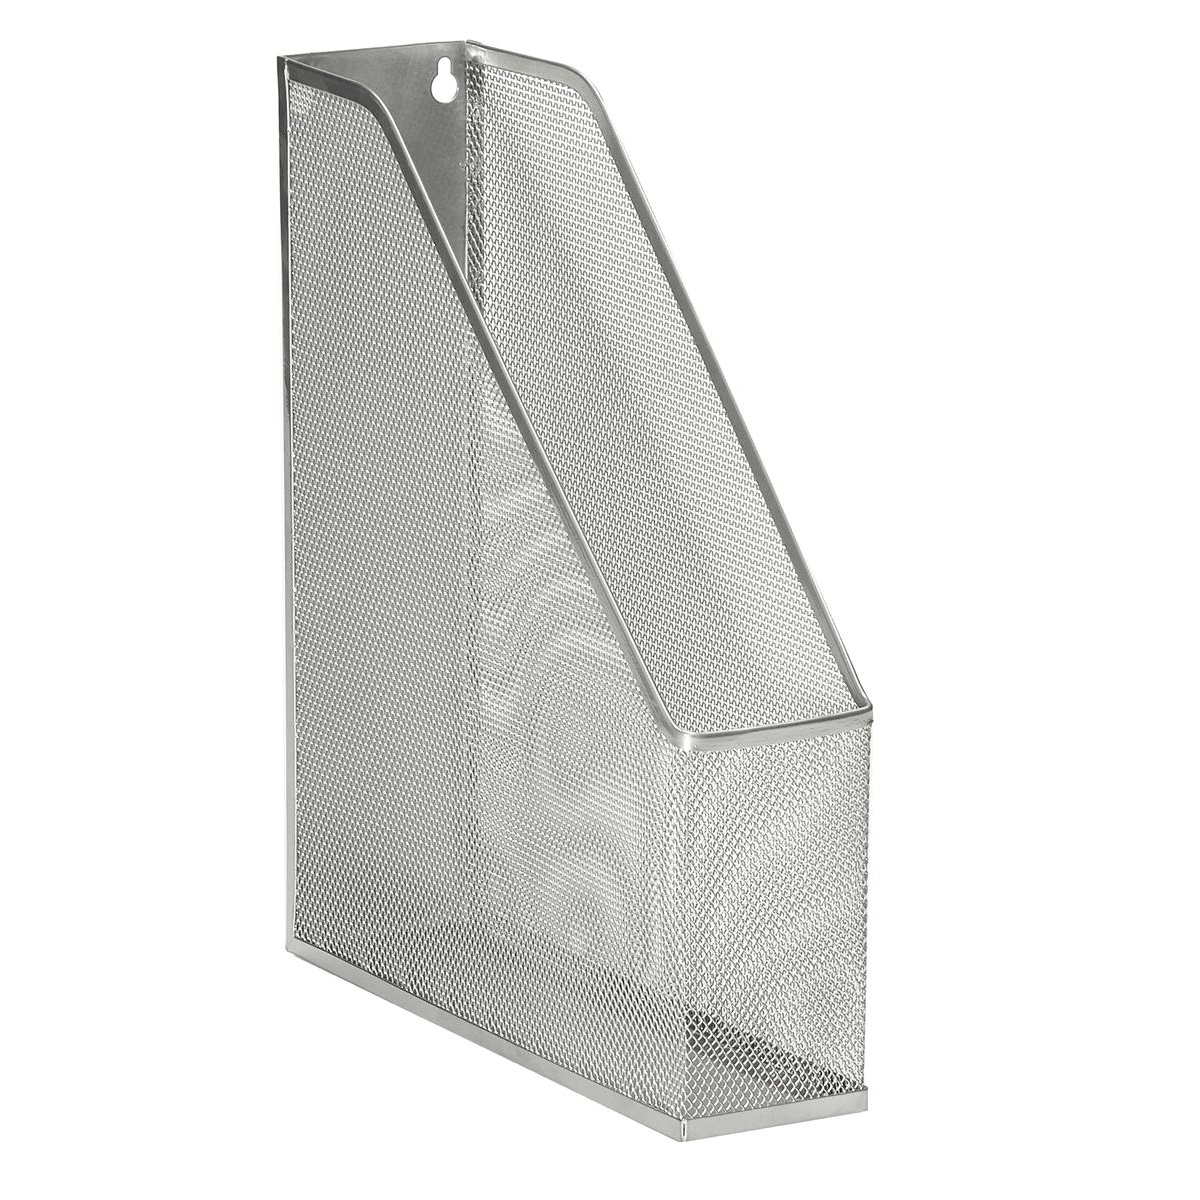 Magazine Files 5 Star Office Mesh Magazine Rack Scratch Resistant with Non Marking Rubber Pads A4 Plus Silver